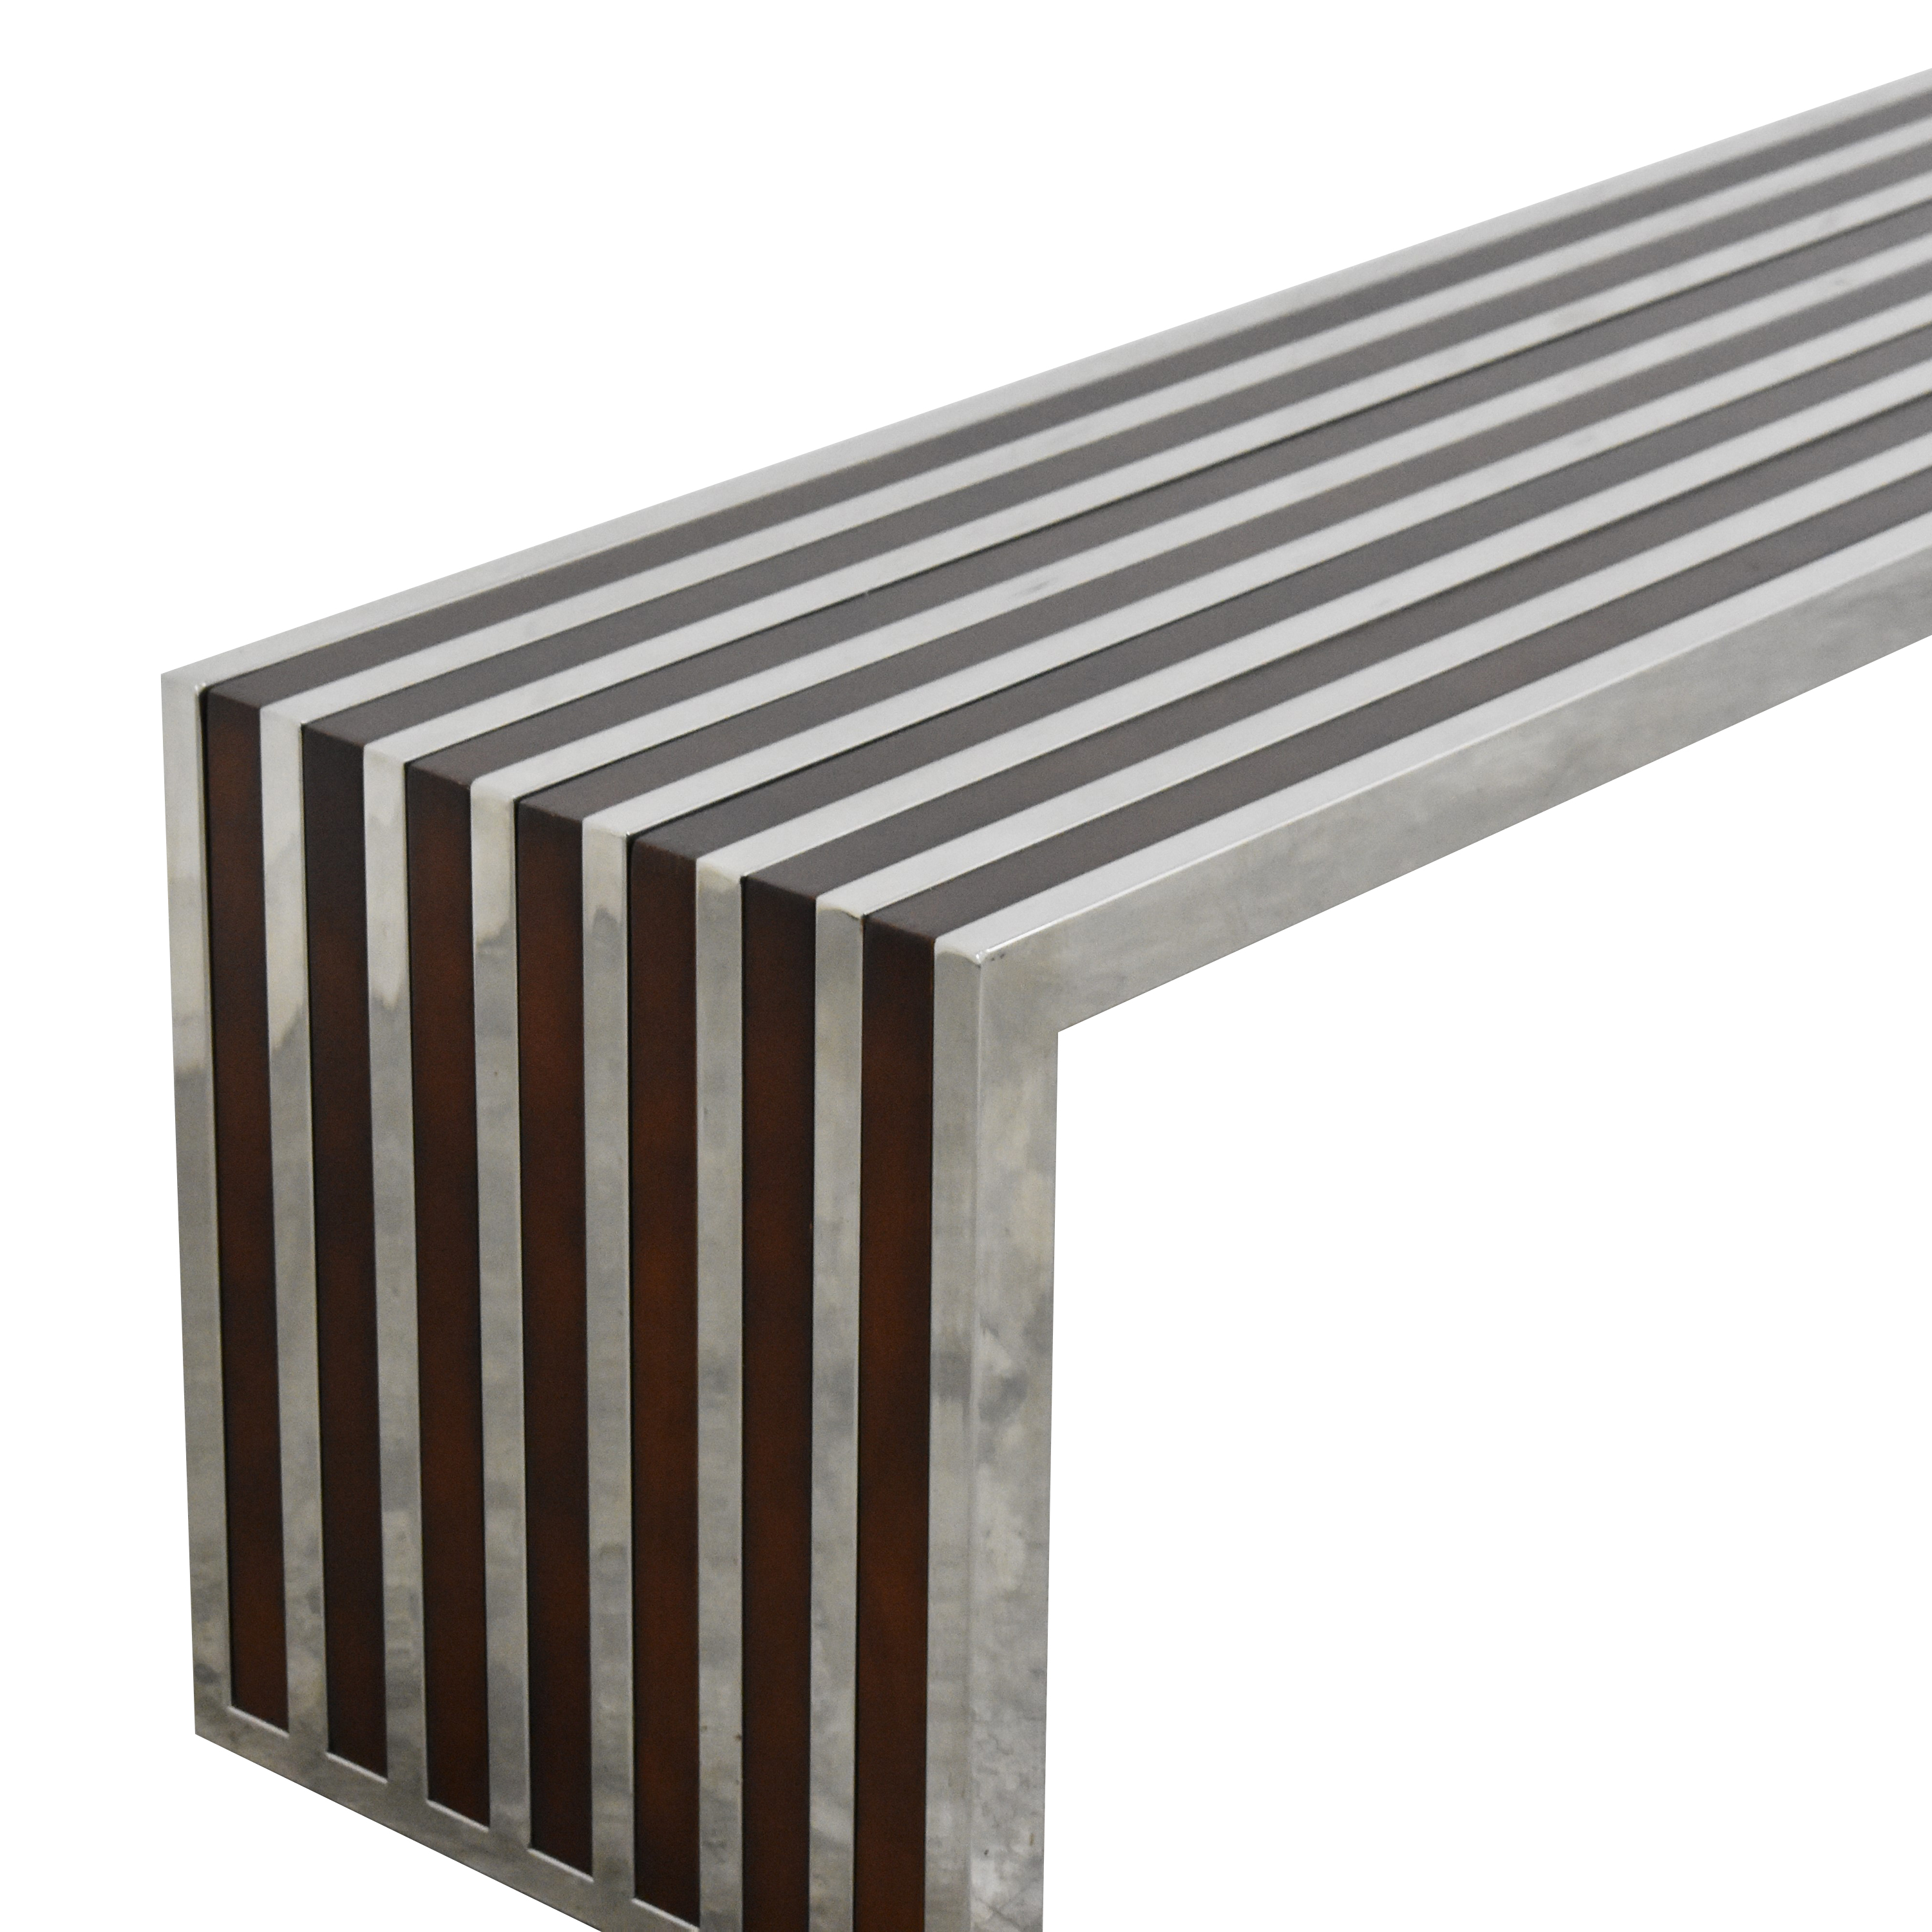 LexMod Gridiron Large Inlay Bench LexMod